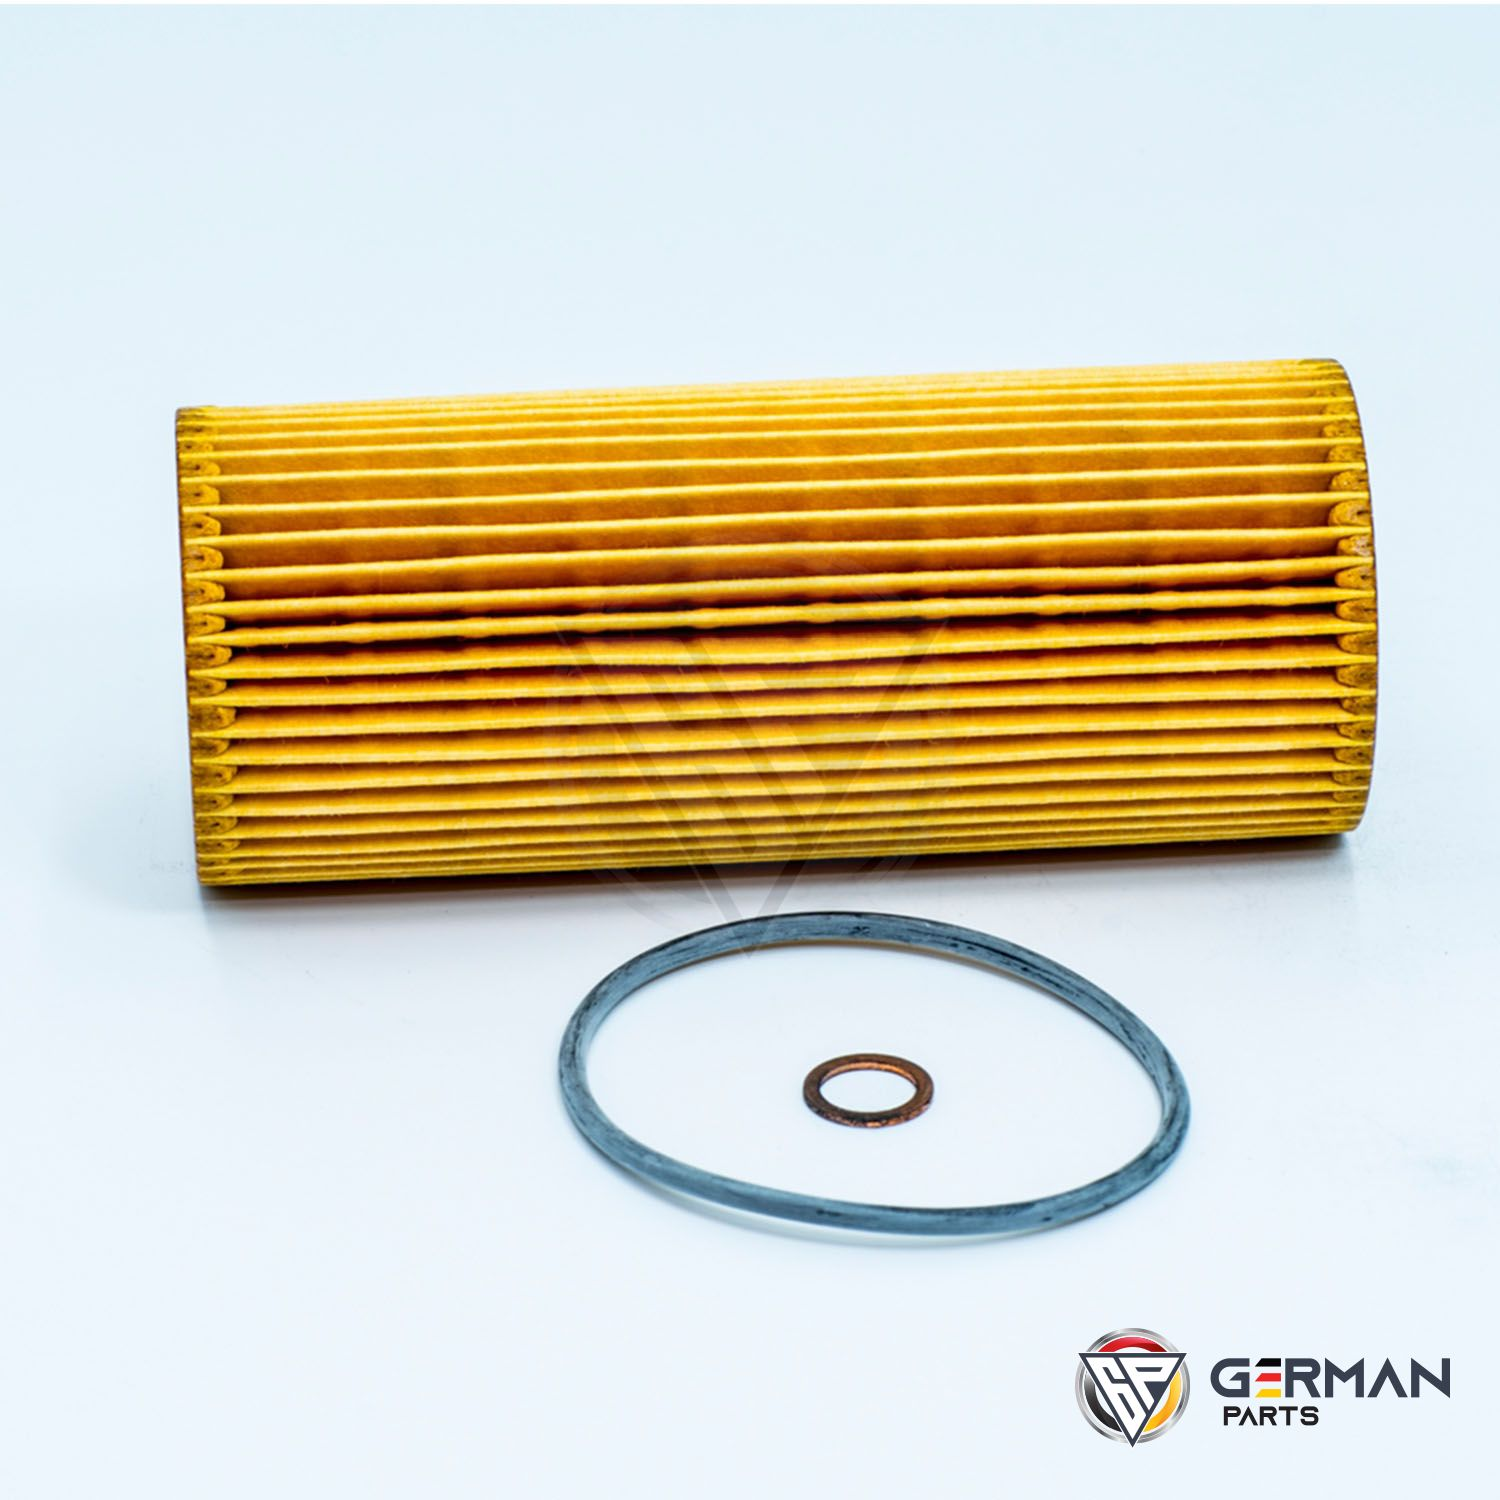 Buy Bosch Oil Filter 06E115562A - German Parts